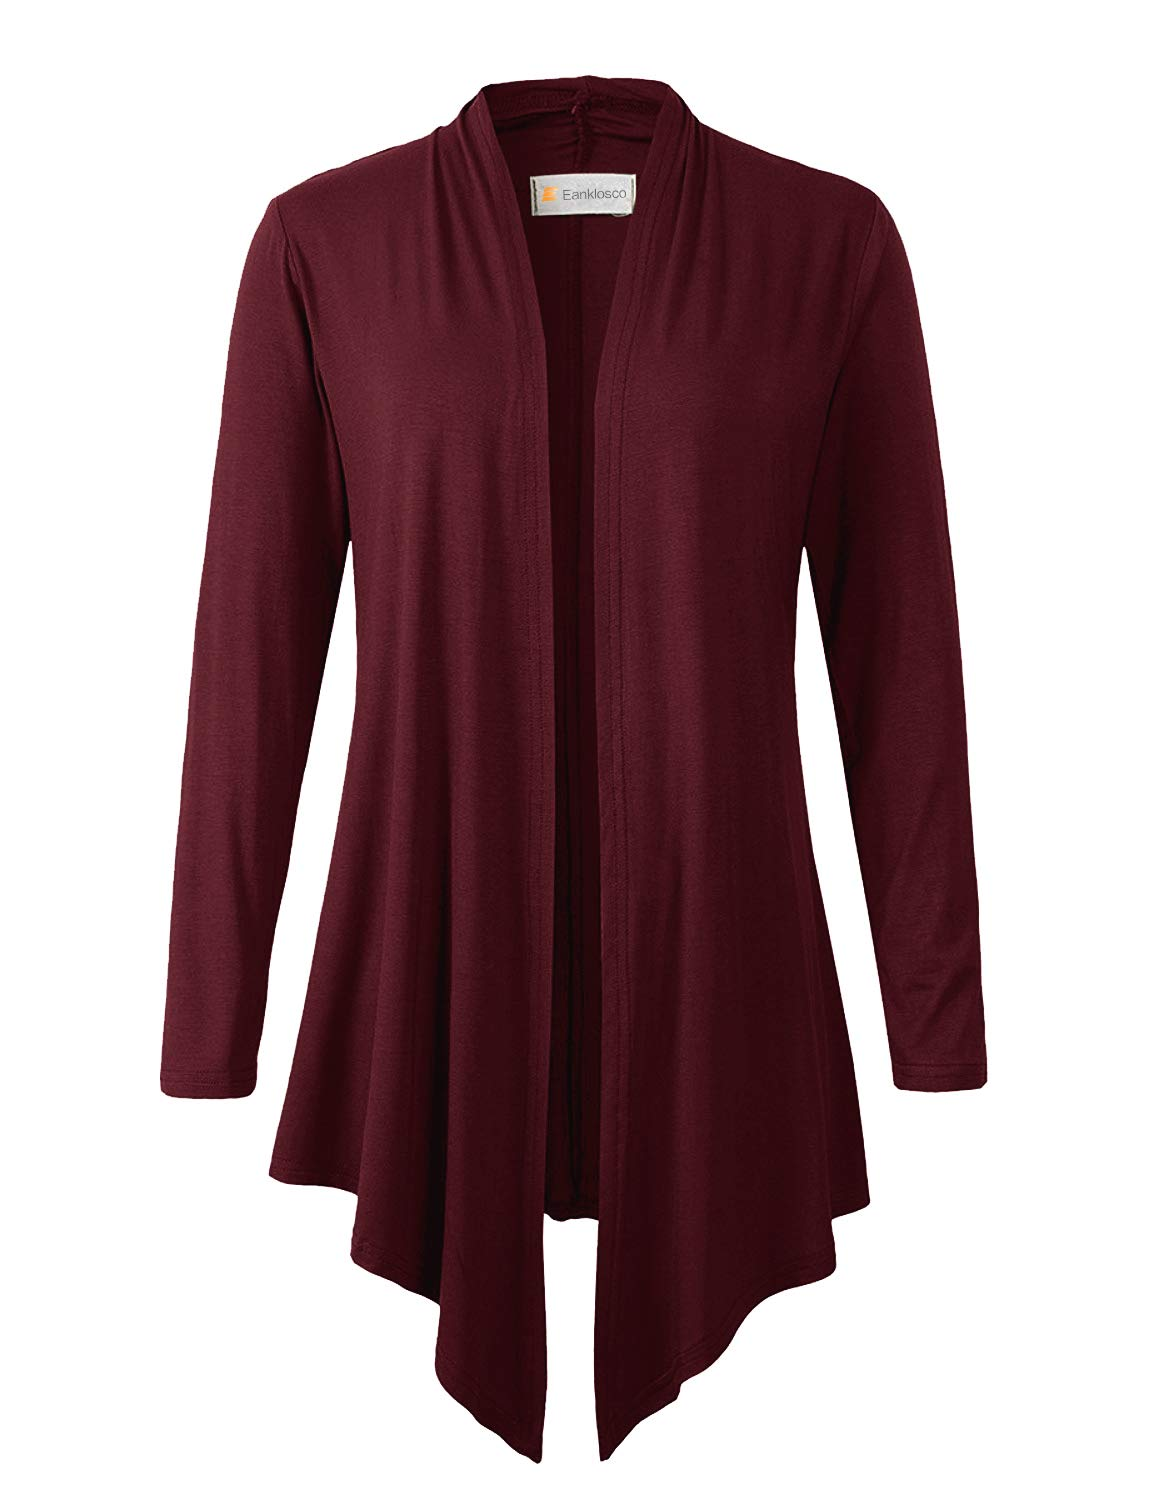 Eanklosco Women's Long Sleeve Drape Open-Front Cardigan Light Weight Irregular Hem Casual Tops (L, Wine Red)